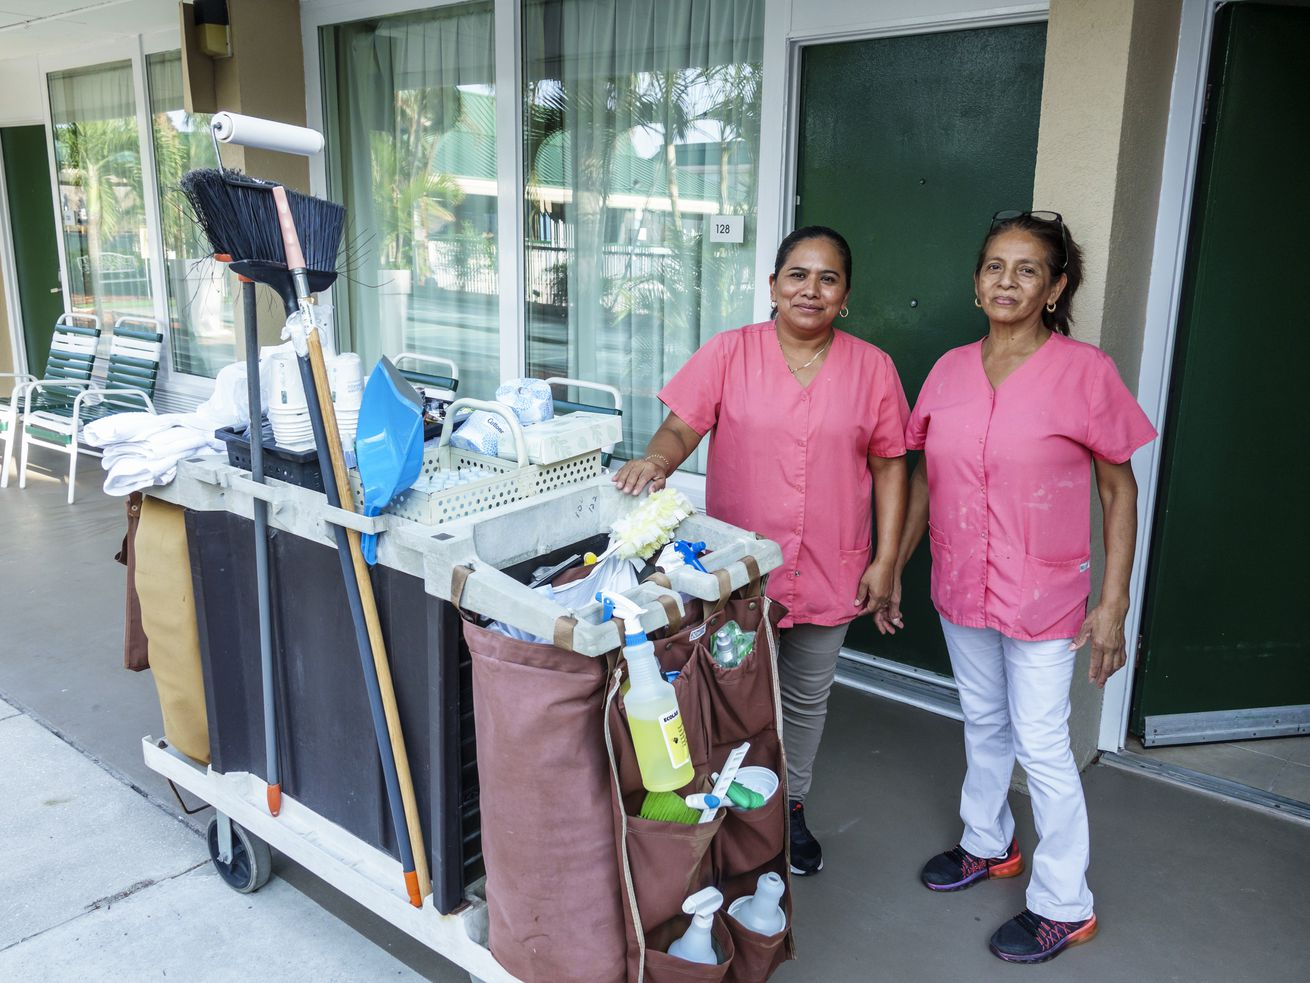 Housekeepers at work at Wyndham Garden hotel in Fort Myers, Florida.